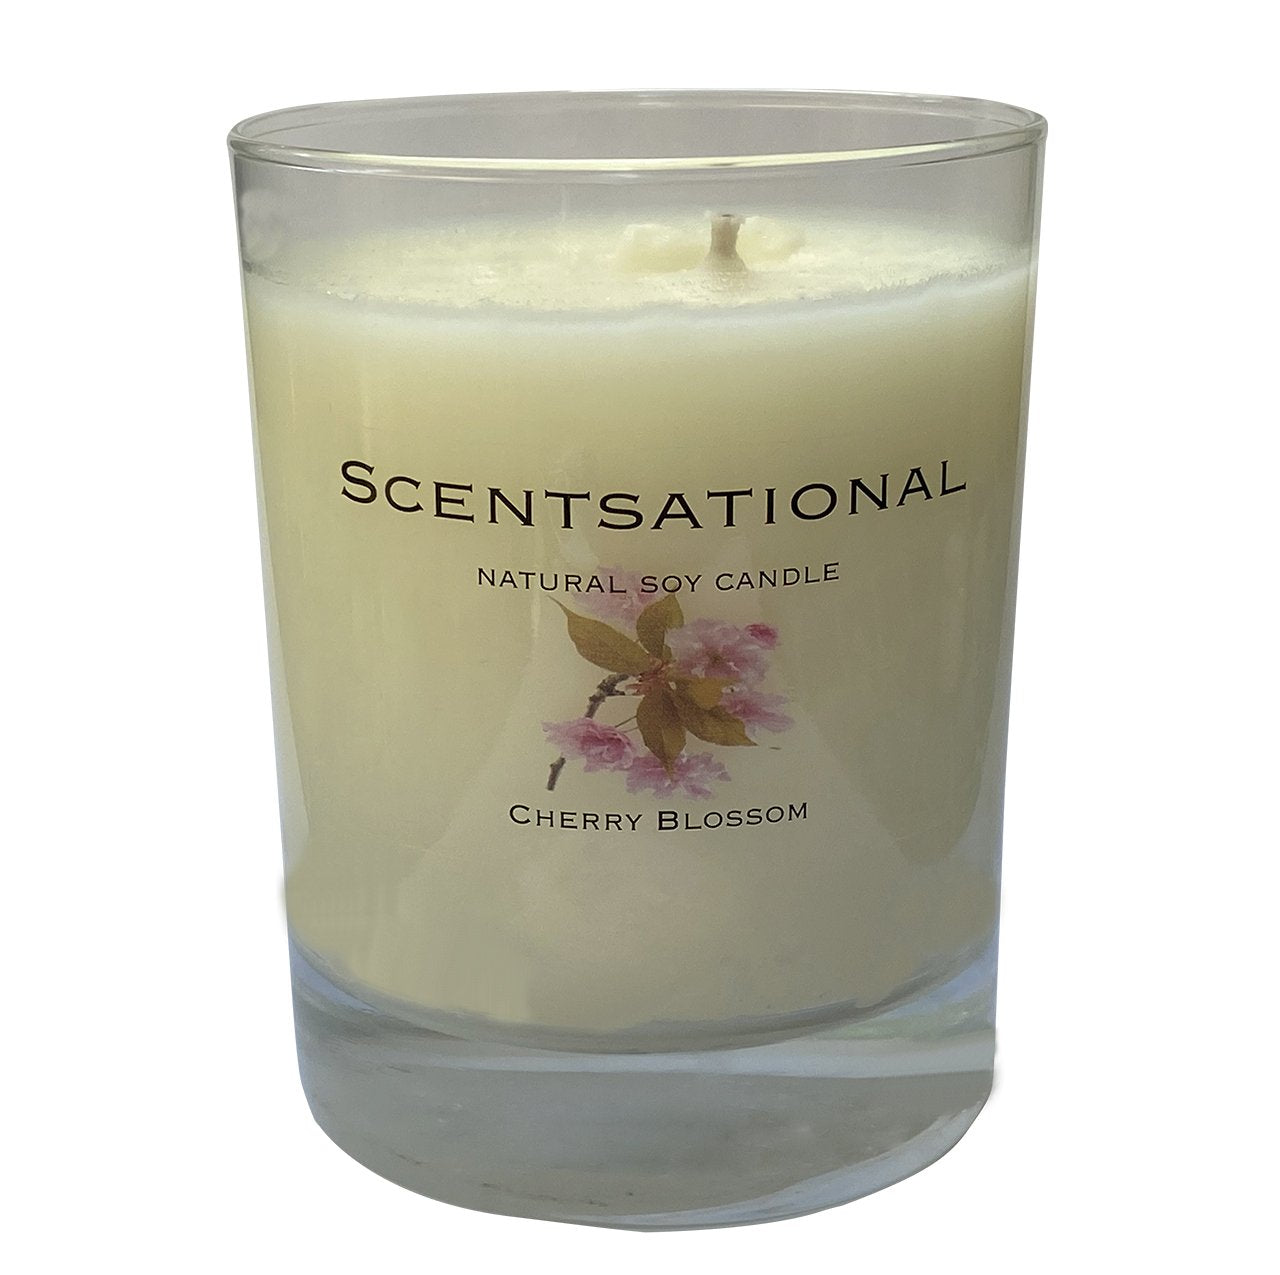 Scented Soy Candles CHERRY BLOSSOM (11 oz) eliminates smoke, household and pet odors.